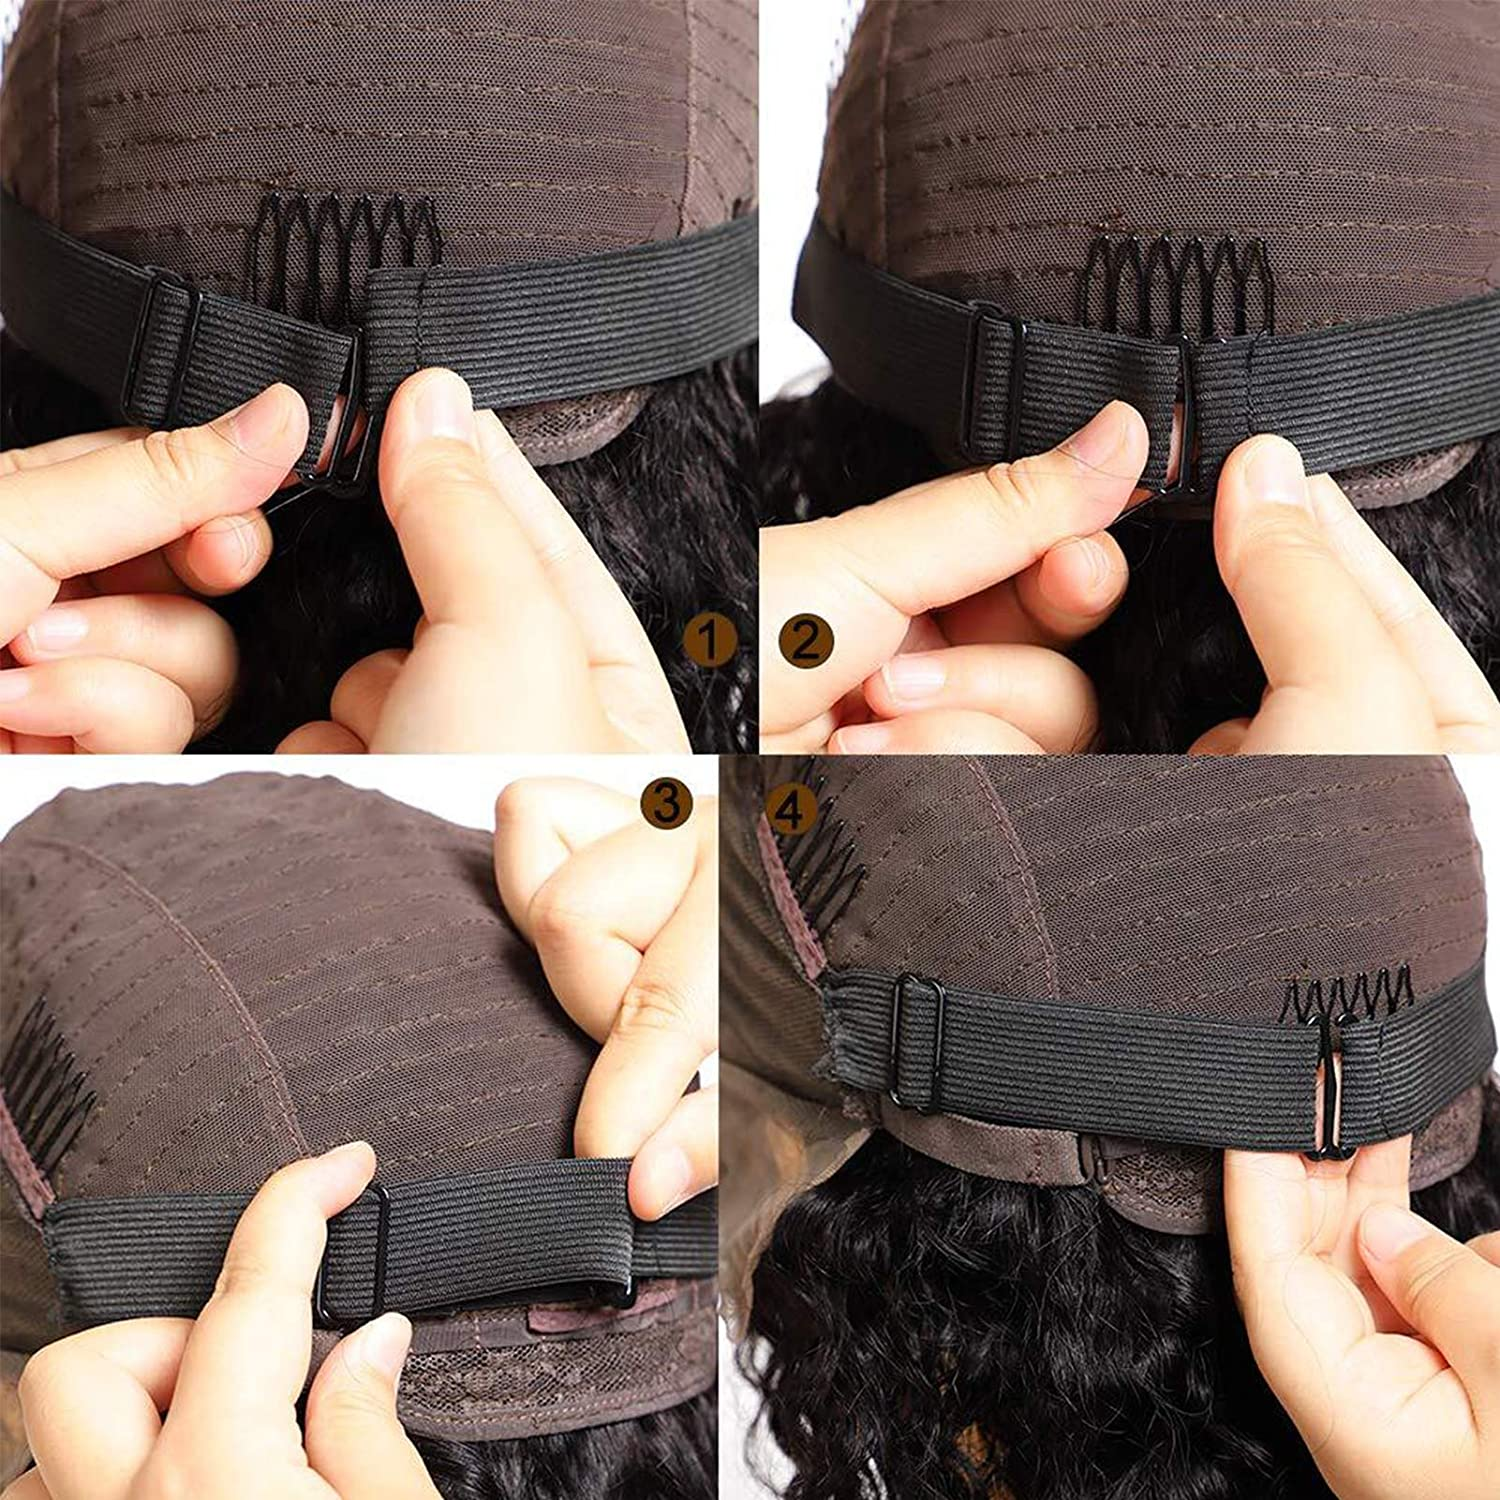 BLUPLE 6 Pcs Black Elastic Band with Adjustable Strap for Wigs Caps//Lace Closures//Lace Frontal Sewing Band 1 Inch width